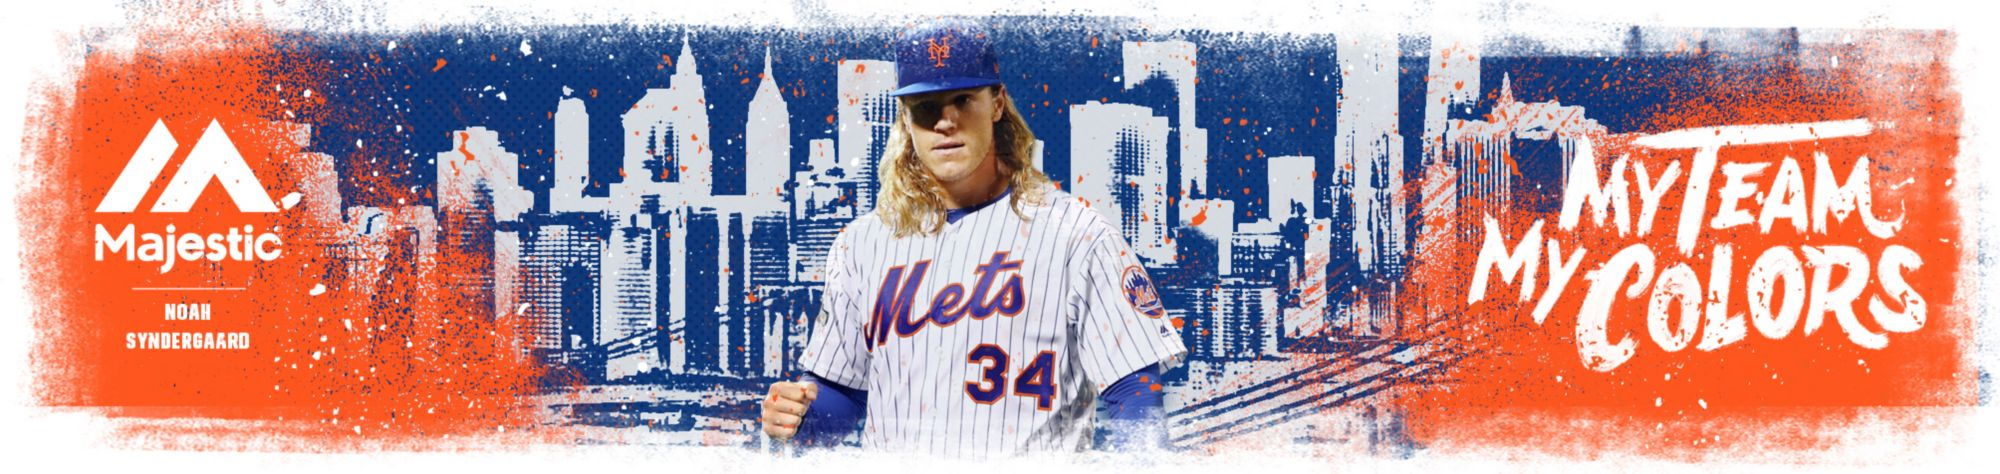 New York Mets Apparel & Gear